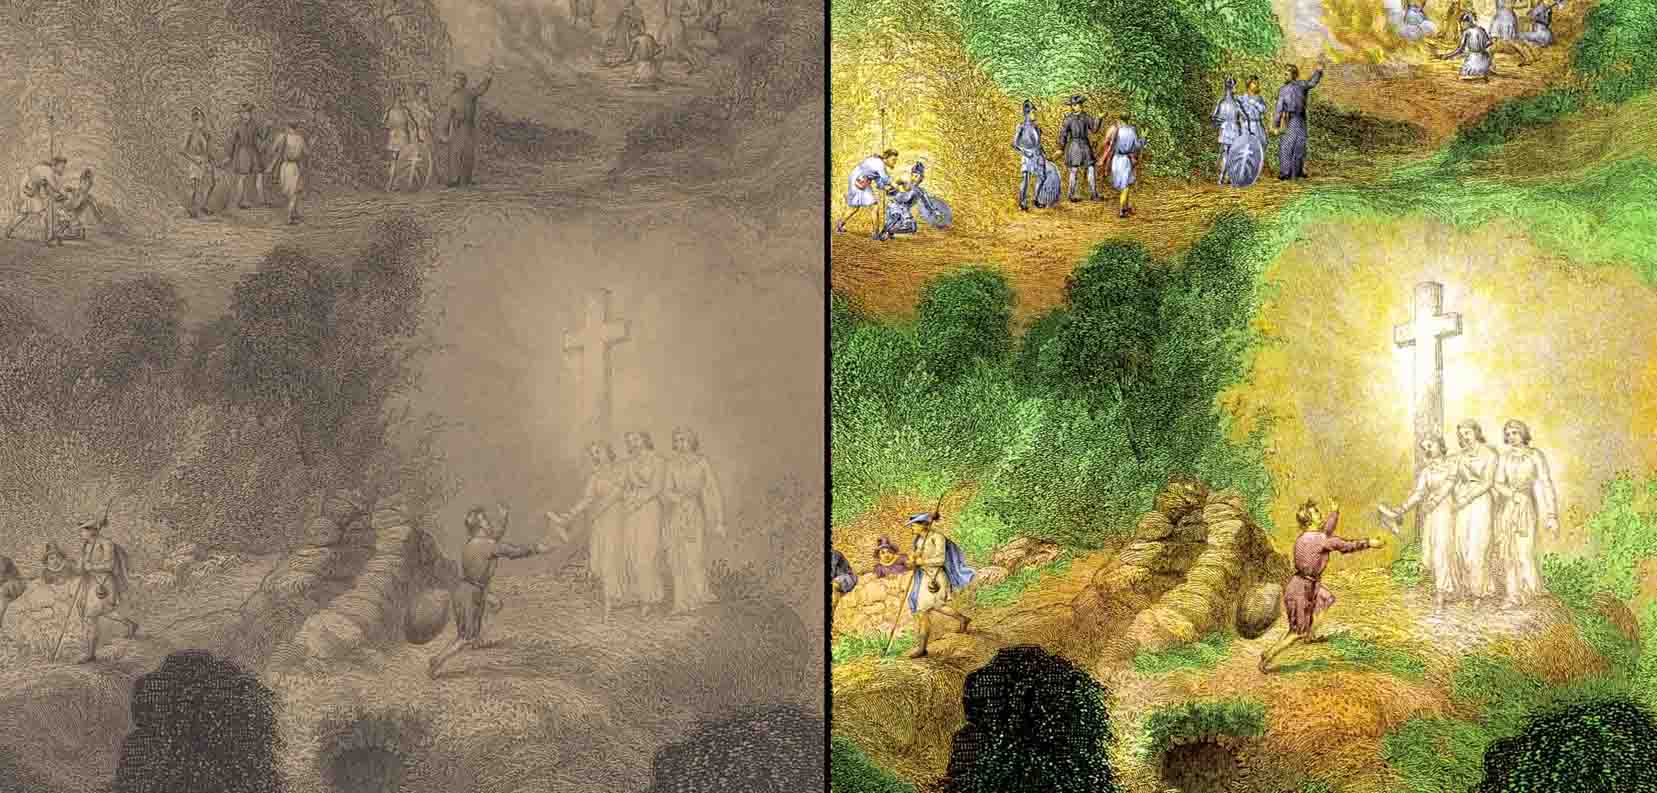 """efore and after colourisation of scenes from engraving """"Bunyan's Pilgrim"""""""